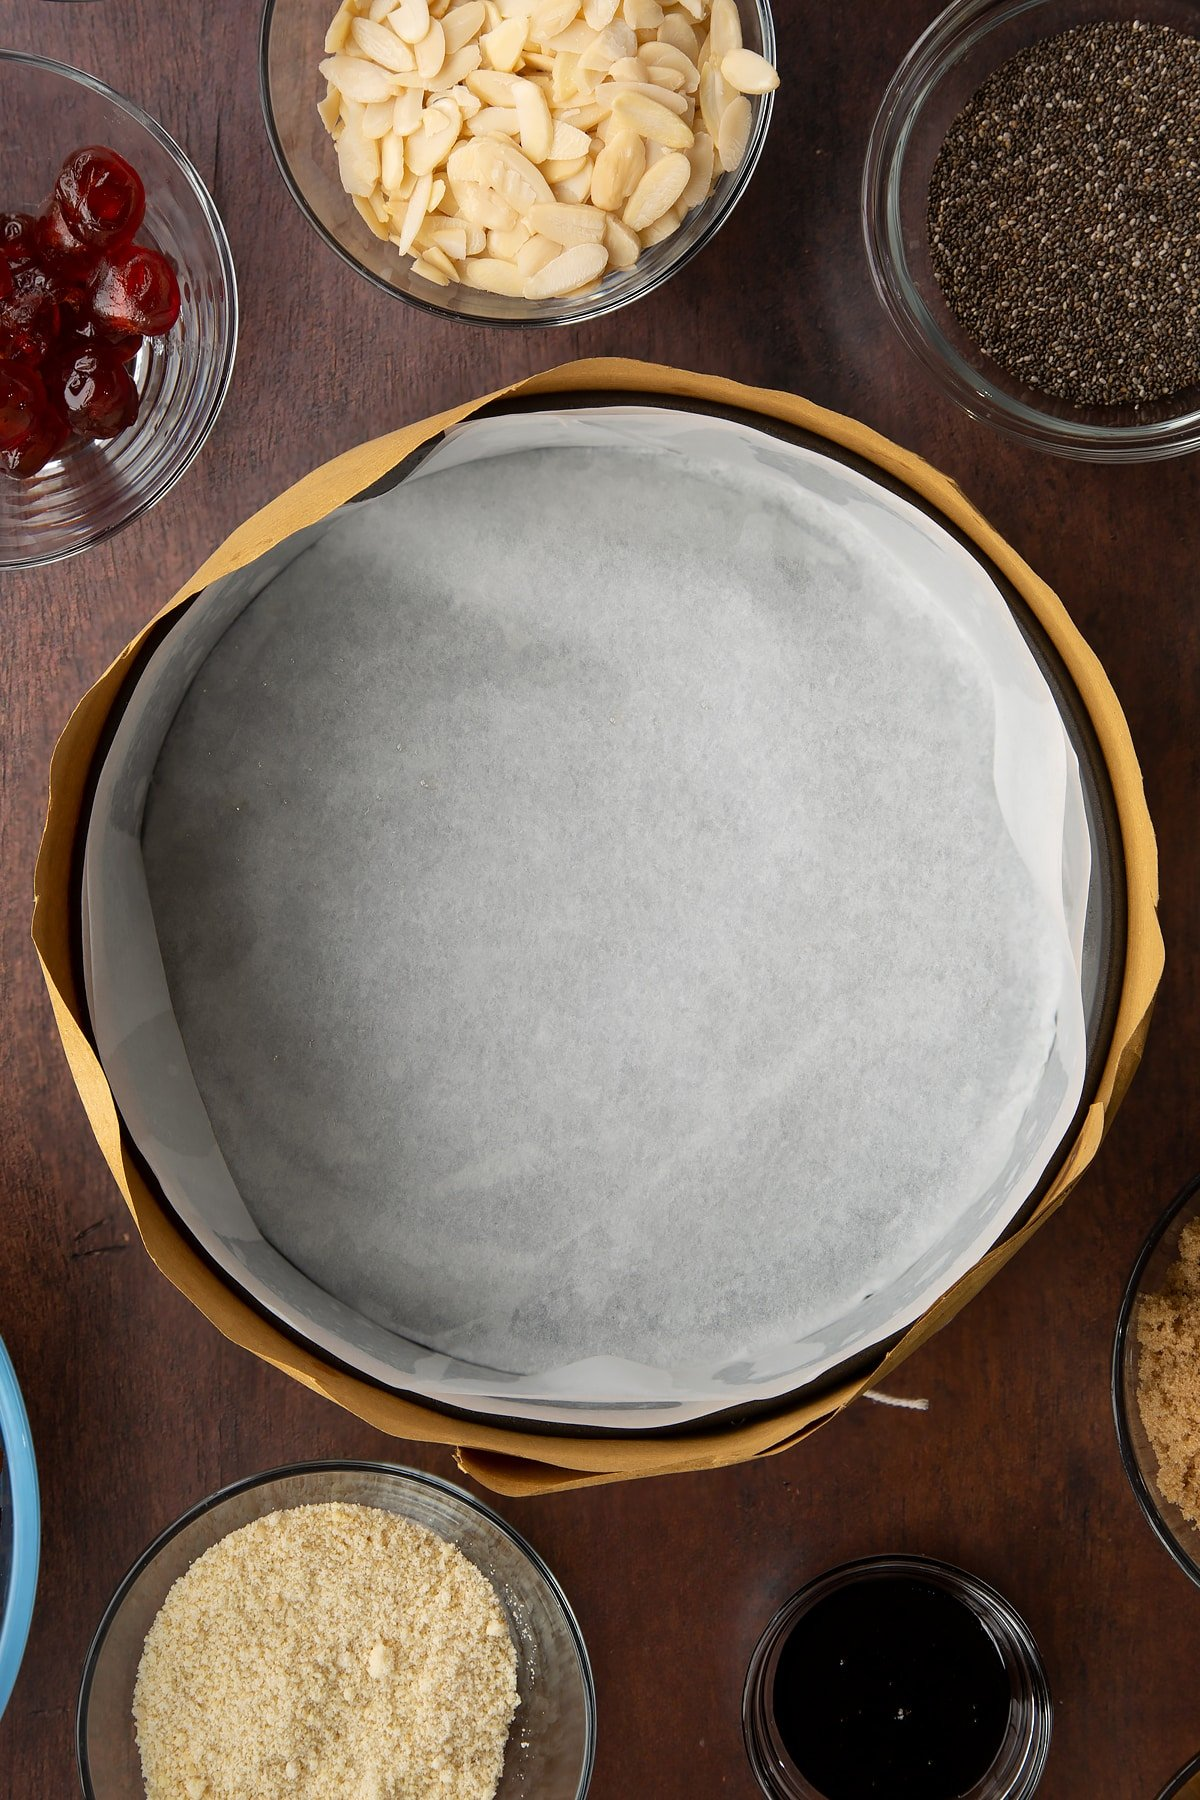 Cake tin lined with baking paper and wrapped in brown paper, tied with string. Ingredients to make vegan Christmas cake surround the tin.